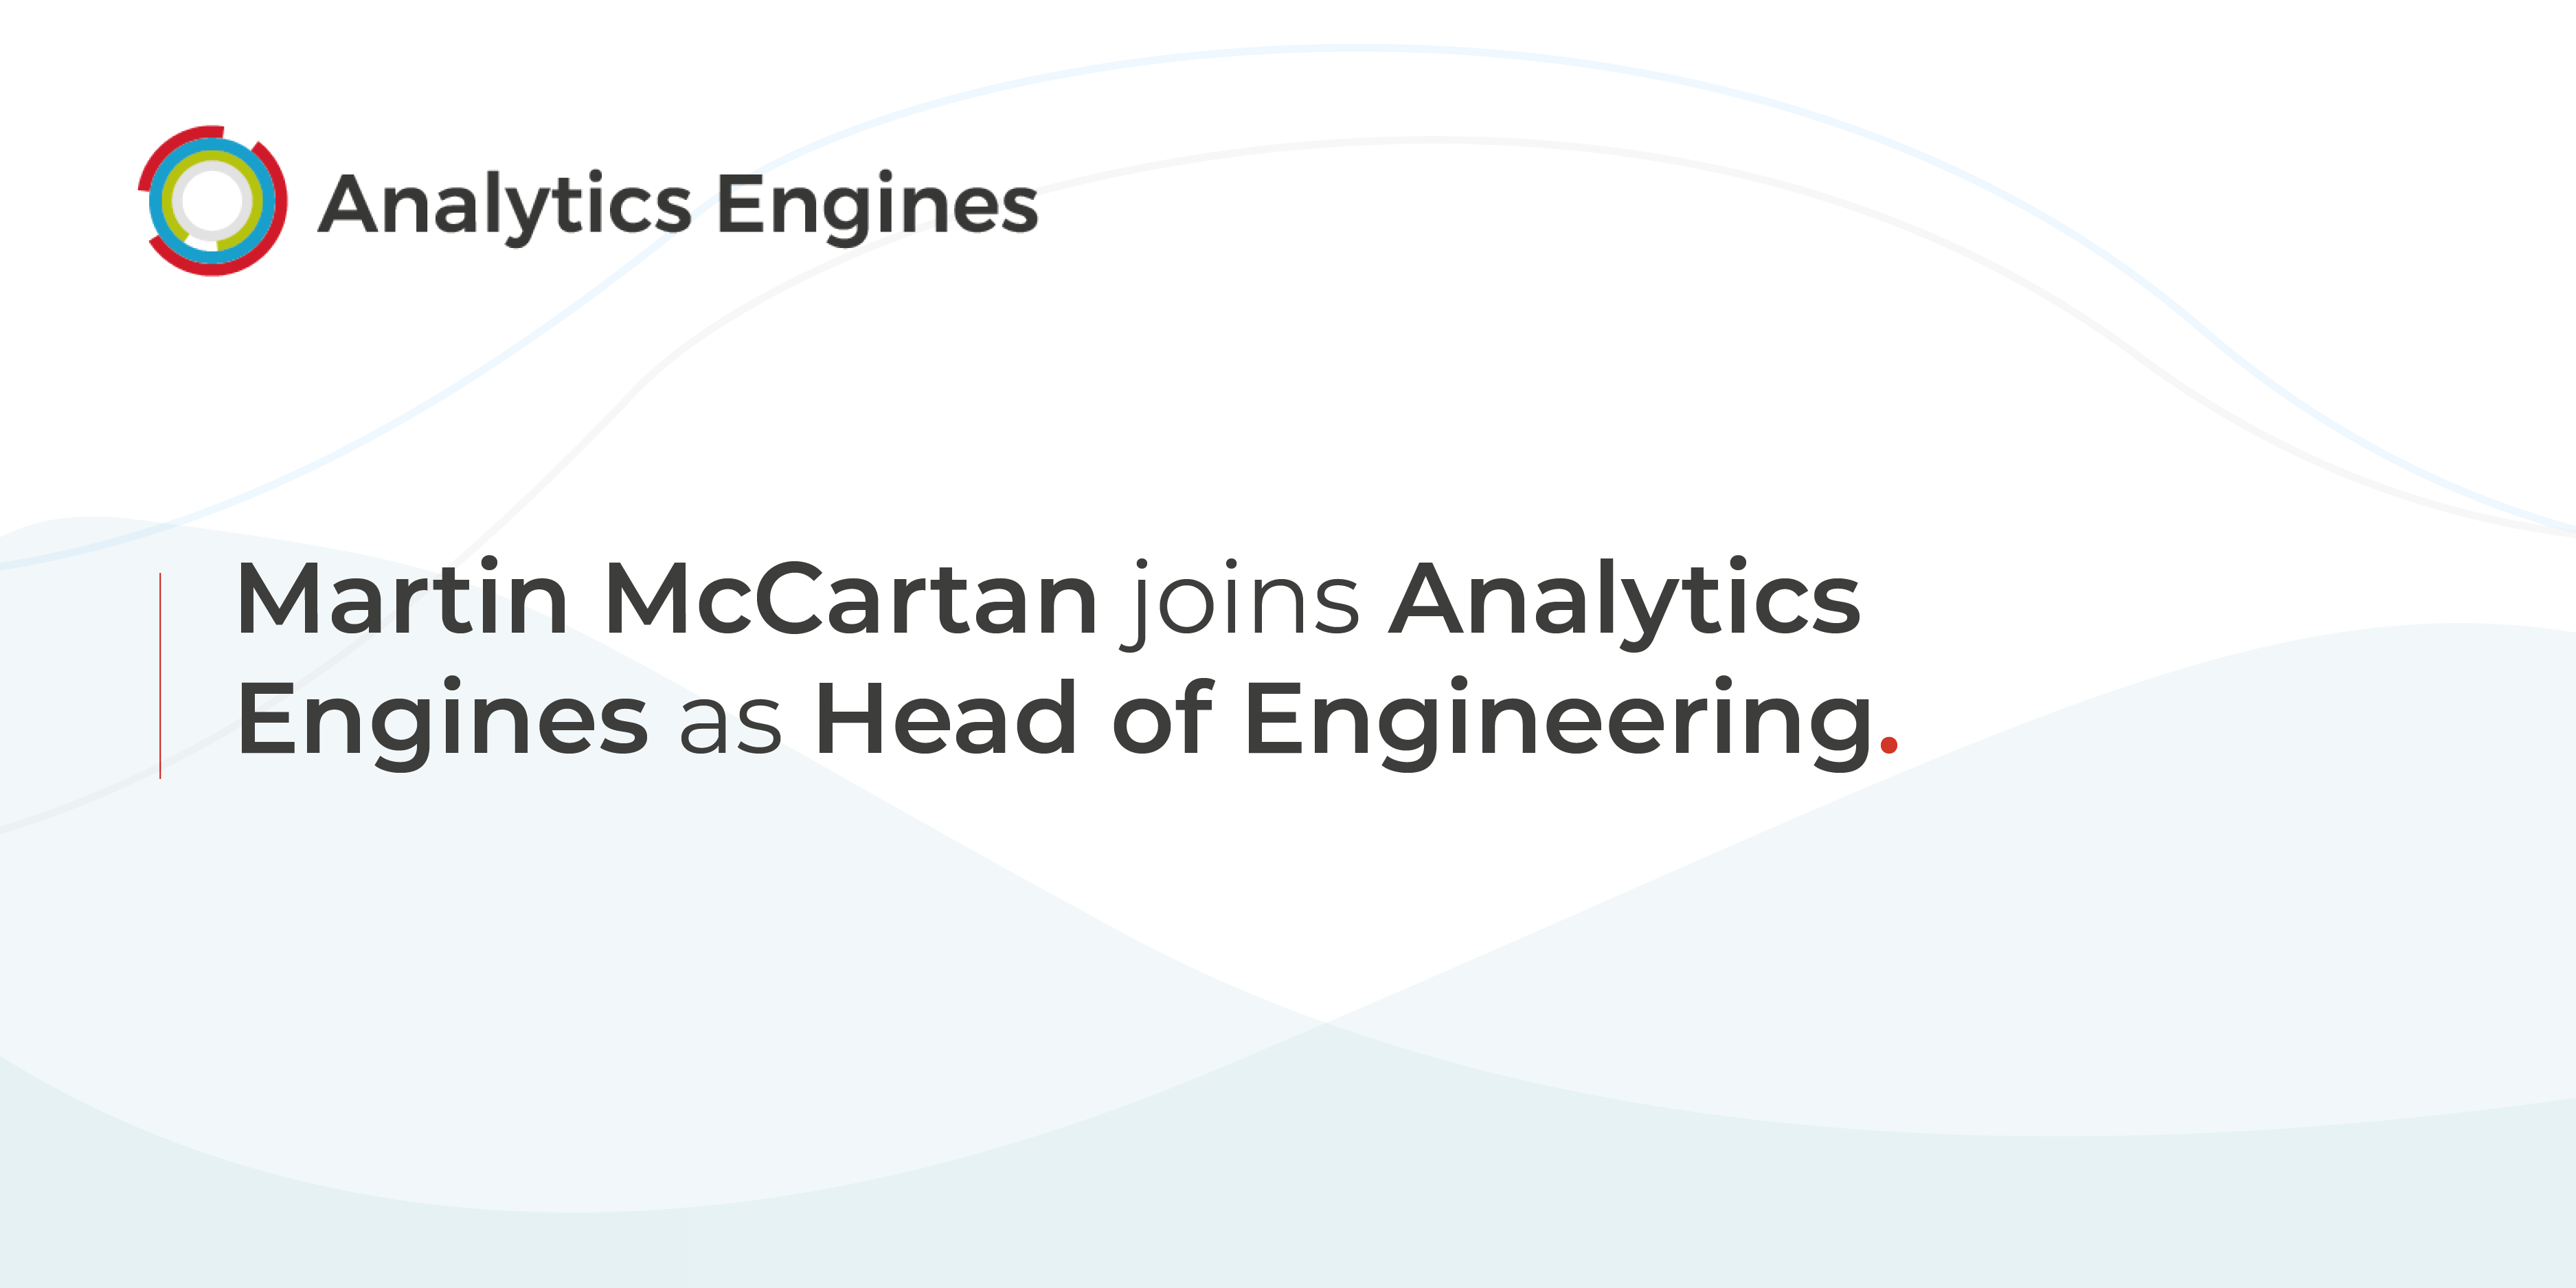 Analytics Engines welcomes Martin McCartan as Head of Engineering